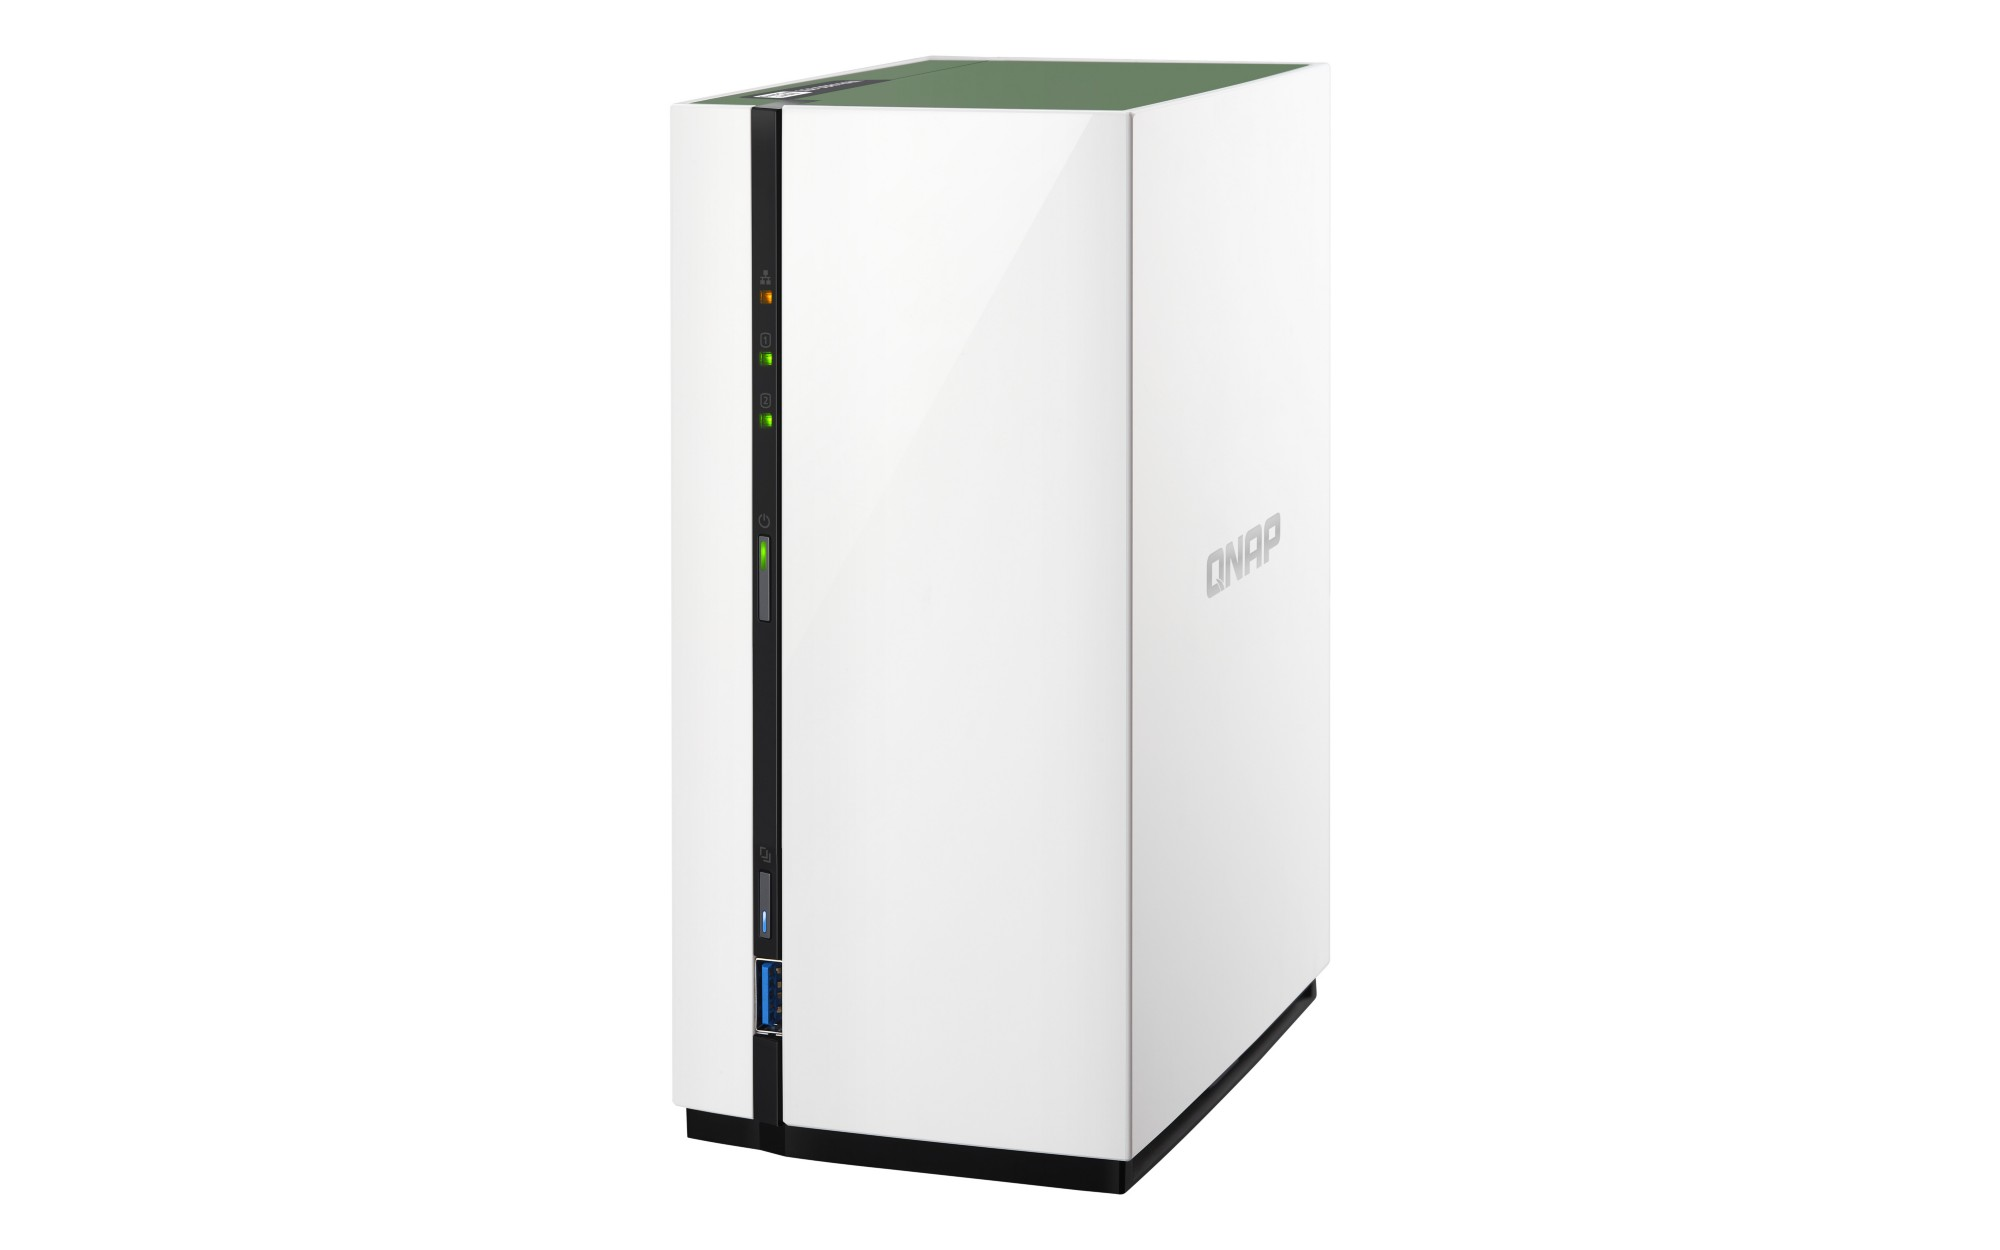 QNAP TS-228A NAS MINI TOWER ETHERNET LAN WHITE STORAGE SERVER